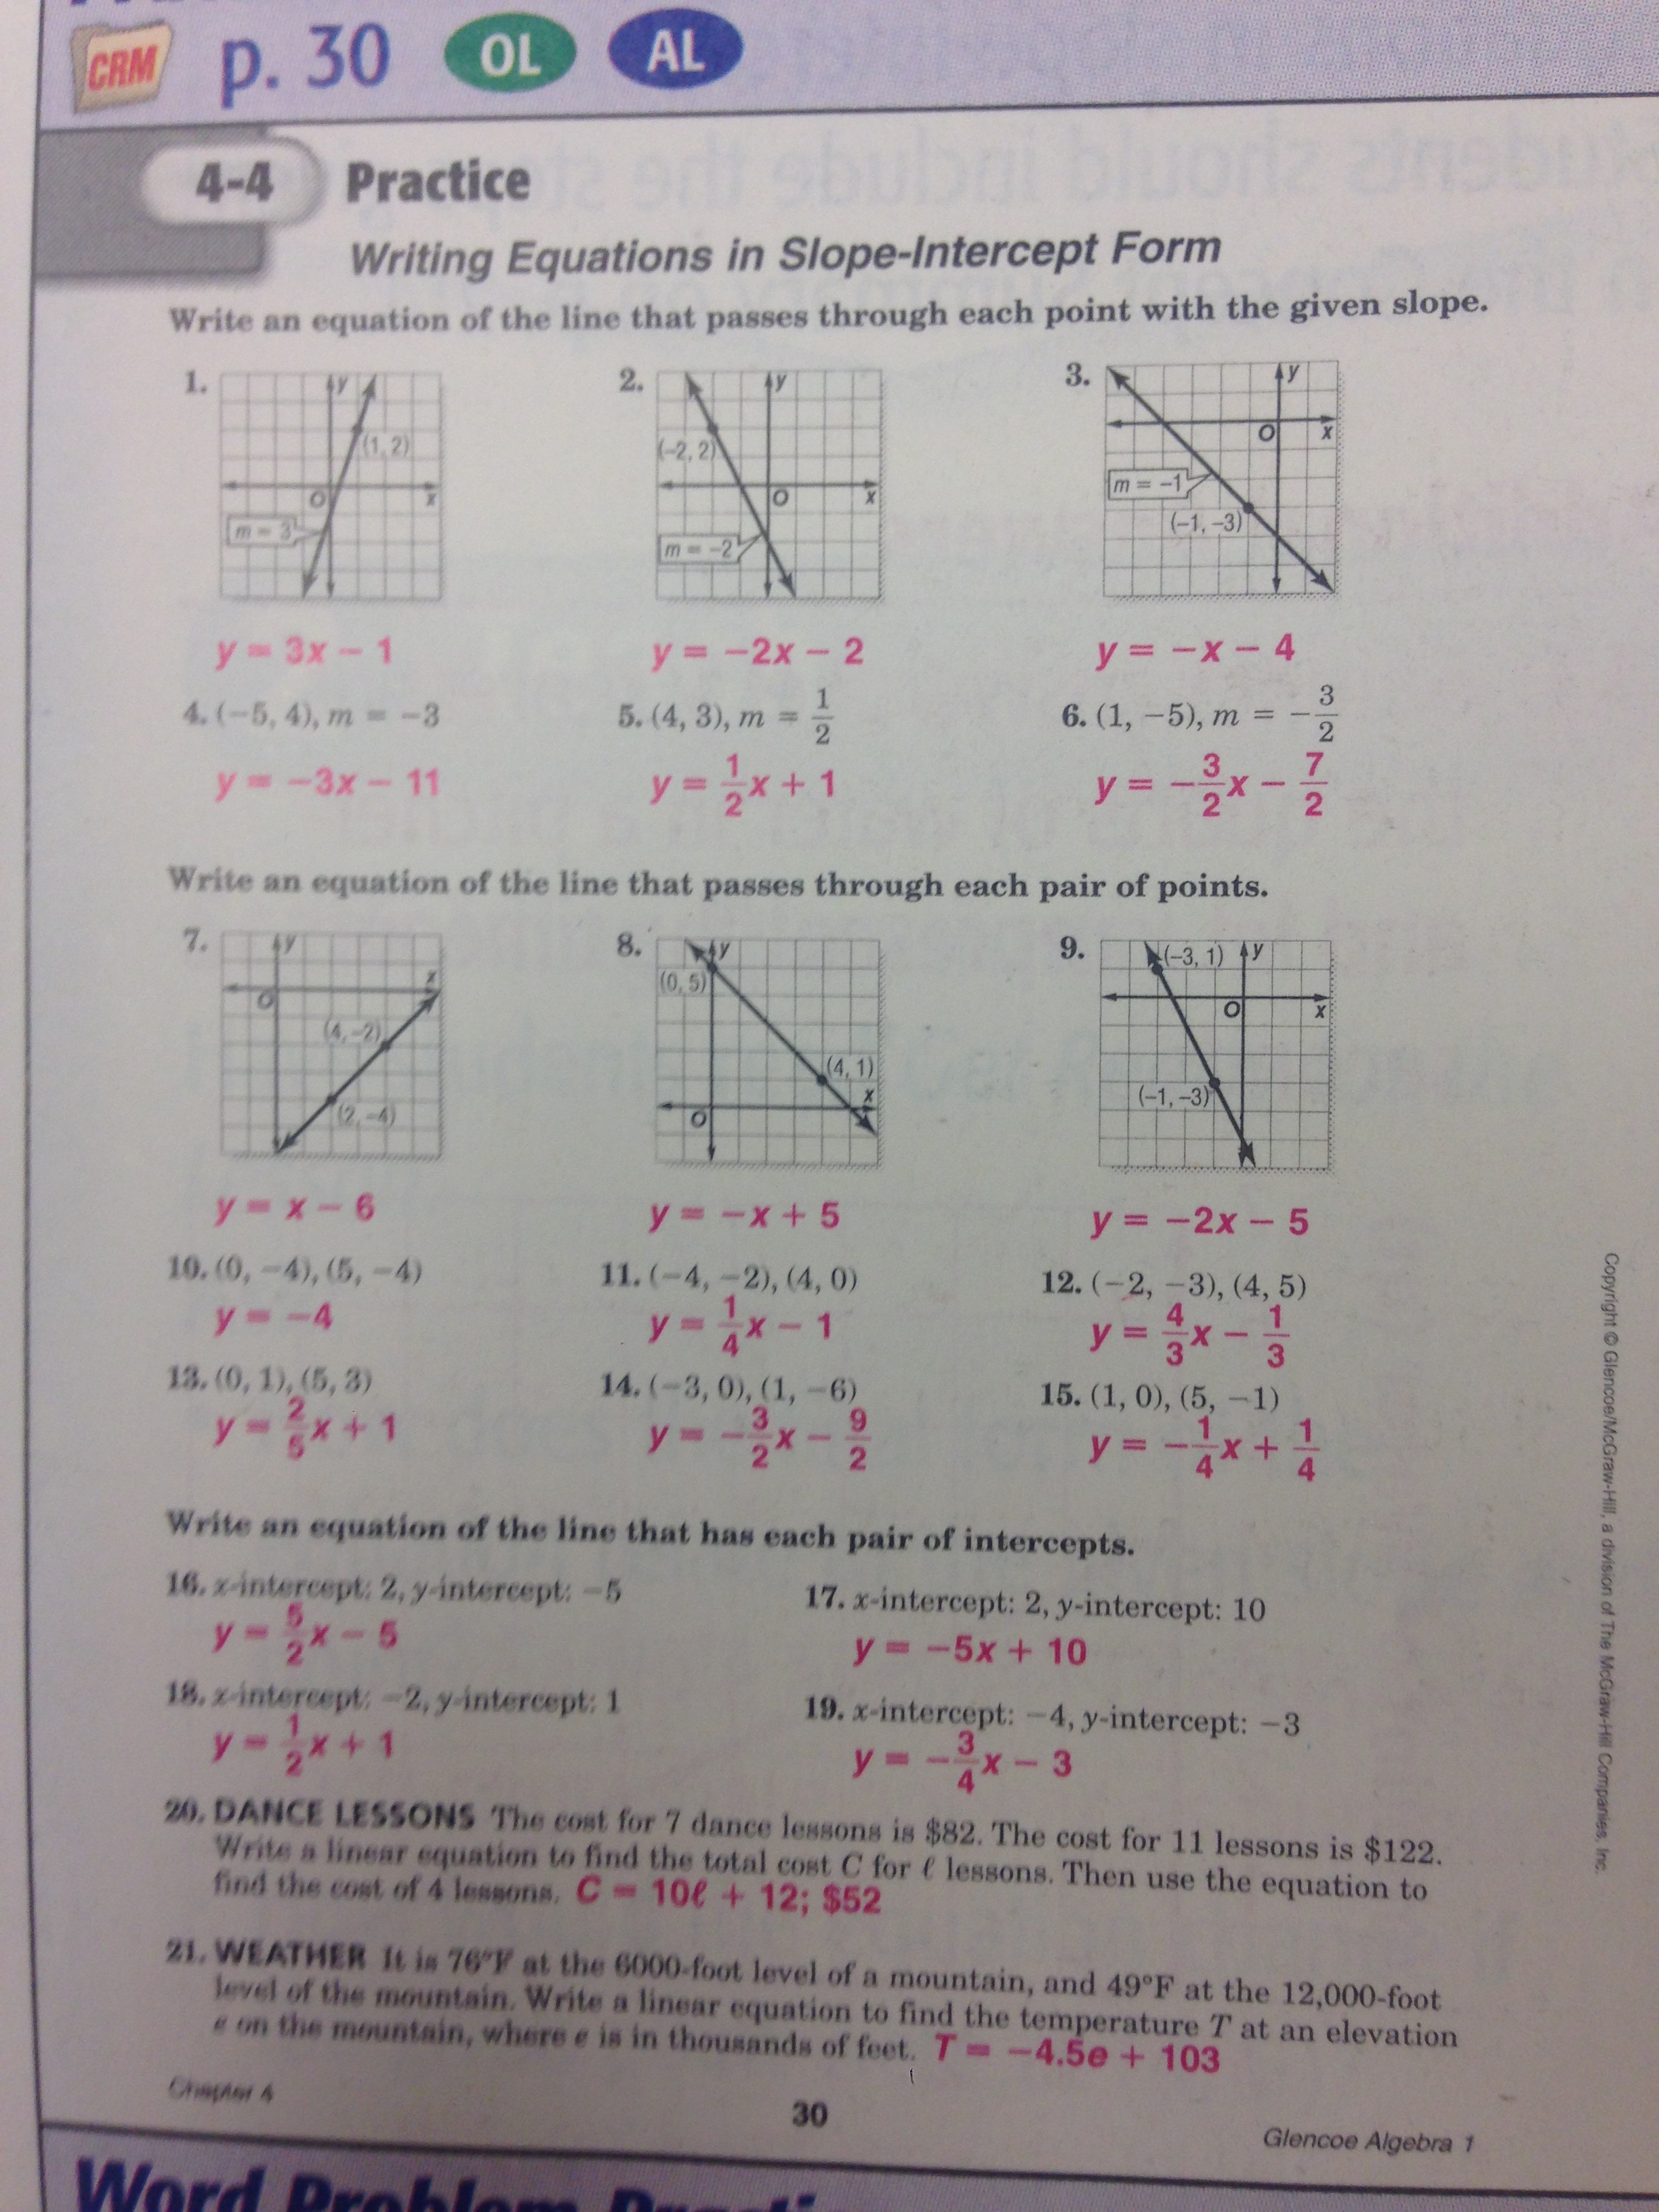 Workbook Answers - Mr. Grimes